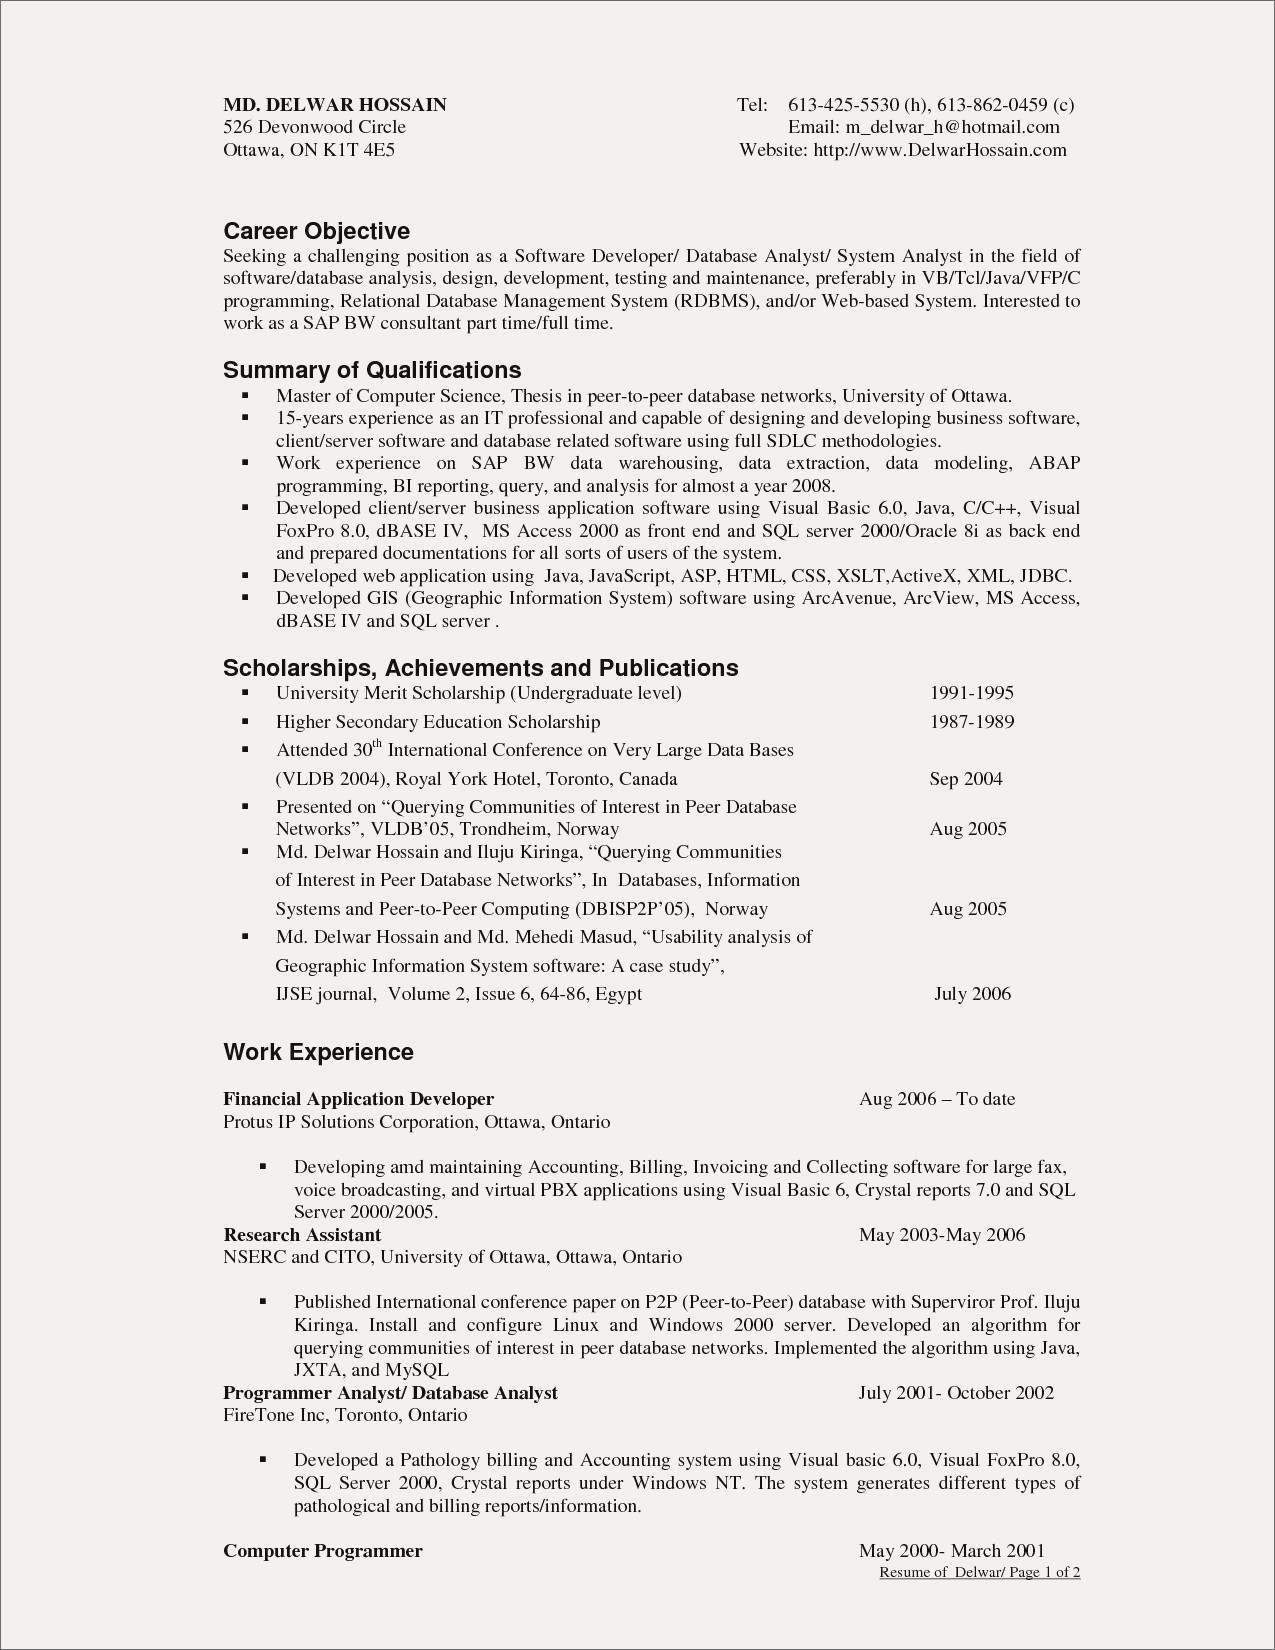 Profile On A Resume - Invoice Management System Profile Resume Examples Unique Cto Resume